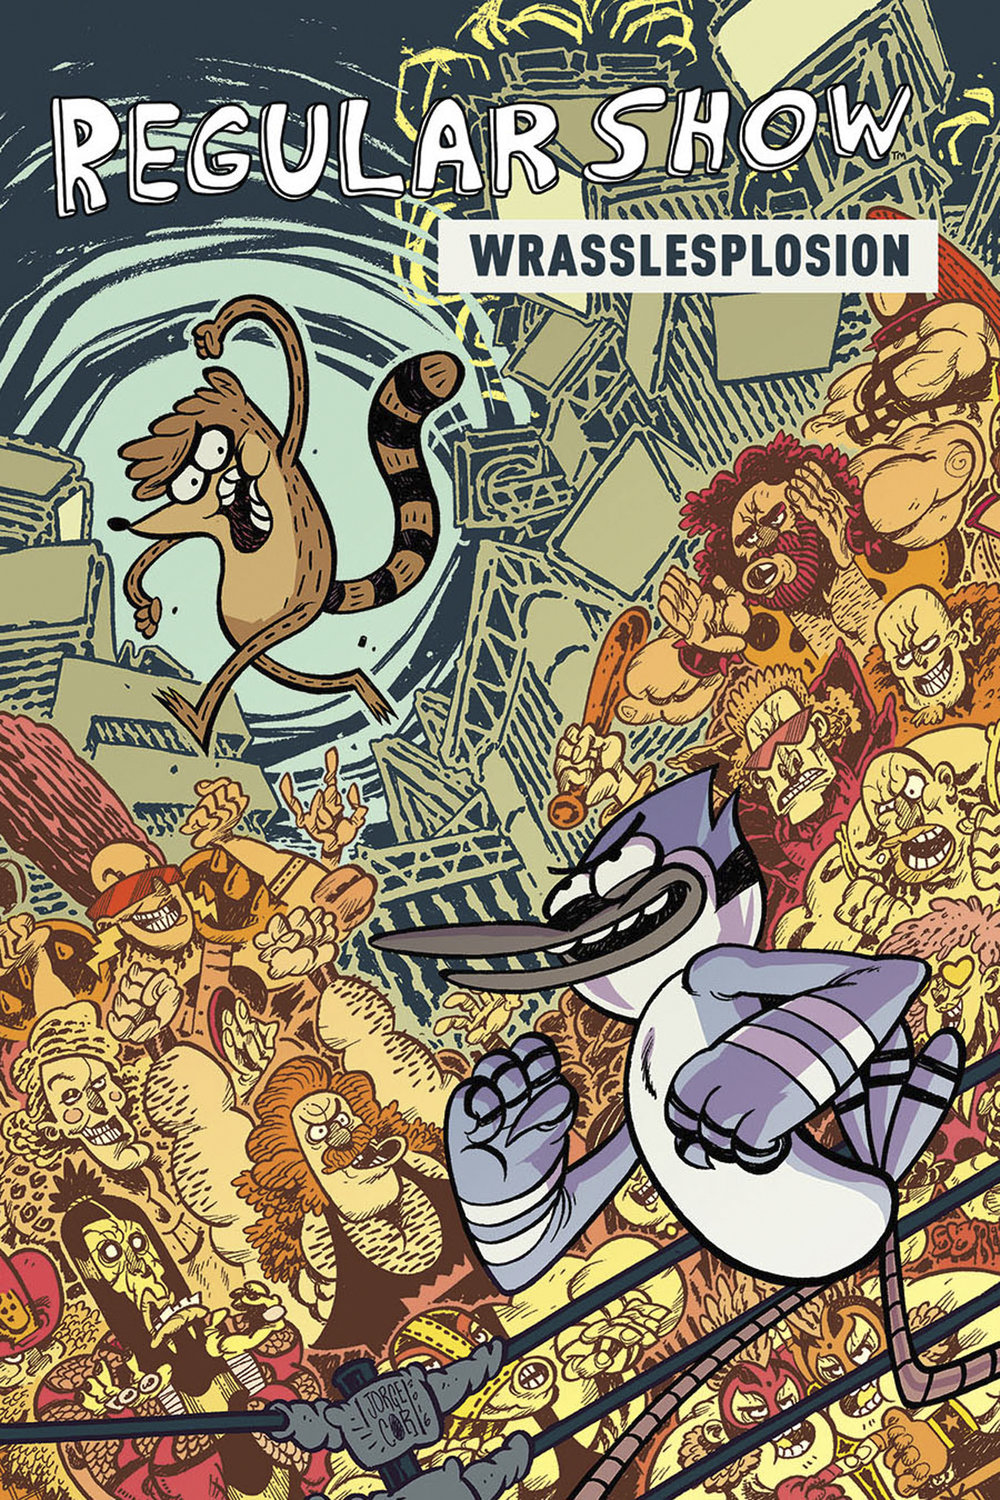 regular show - I contributed several short comics to the Regular Show comic series (based on the Cartoon Network show).